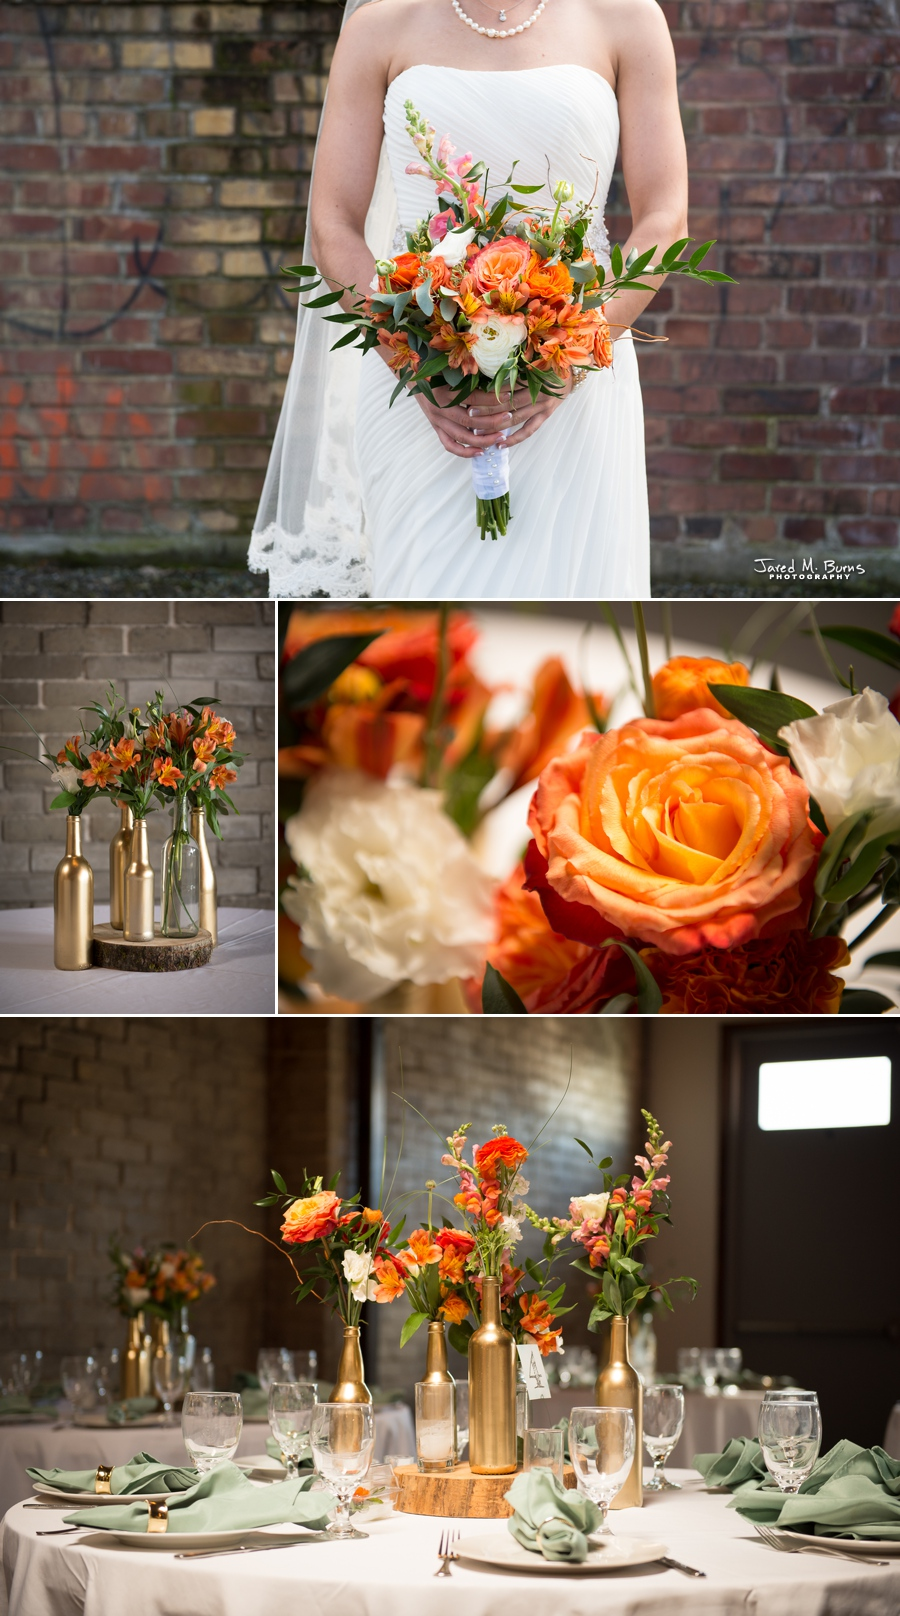 Seattle Wedding Photographer, Jared M. Burns - Within Sodo Bride Bouquet flowers